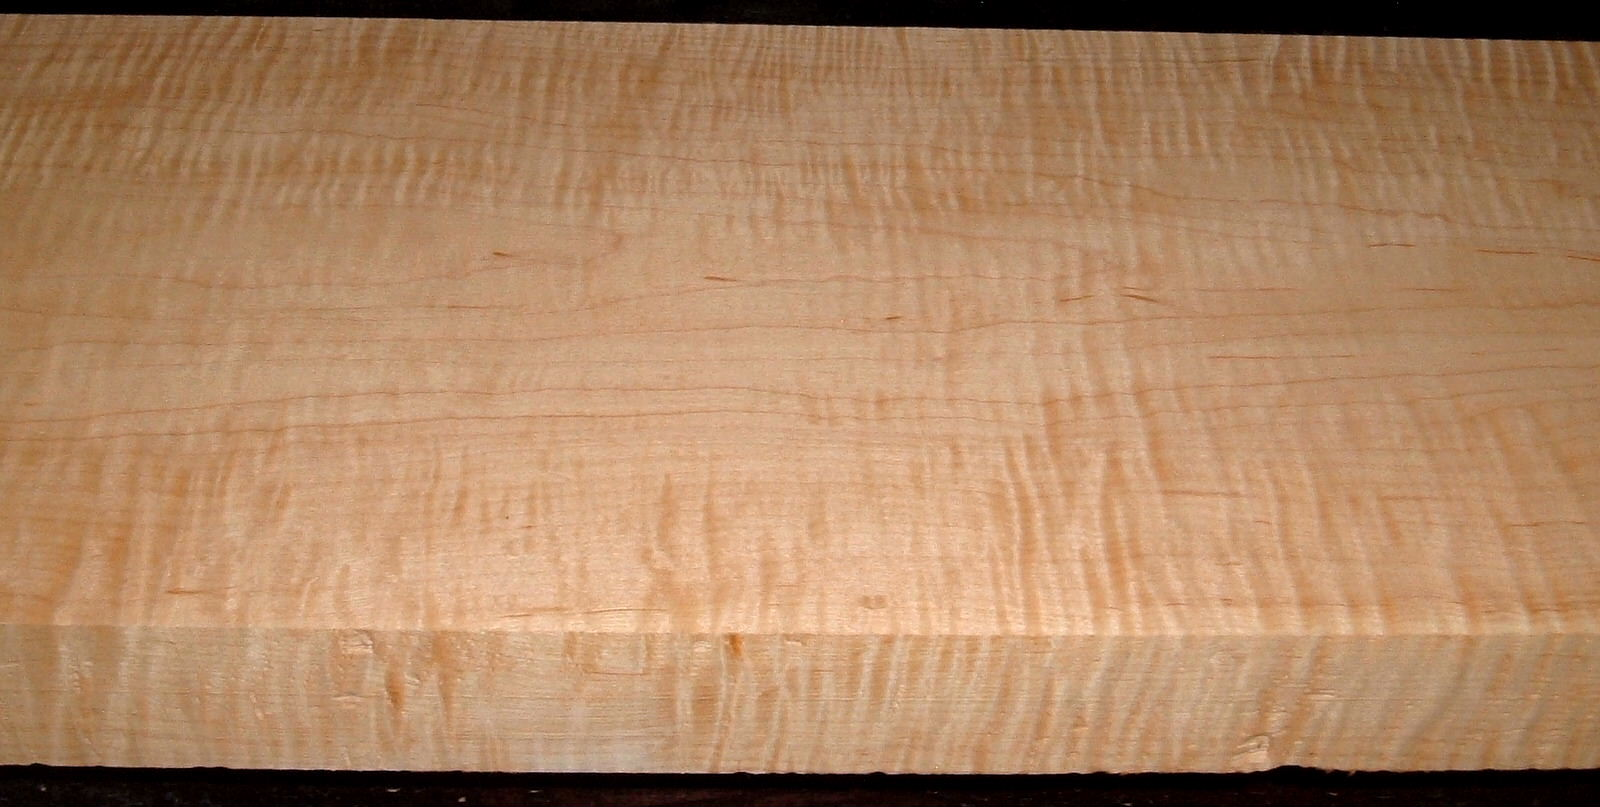 HM2007-125, 1-7/8x9-1/2x43, 8/4 Curly Tiger Figured Hard Maple